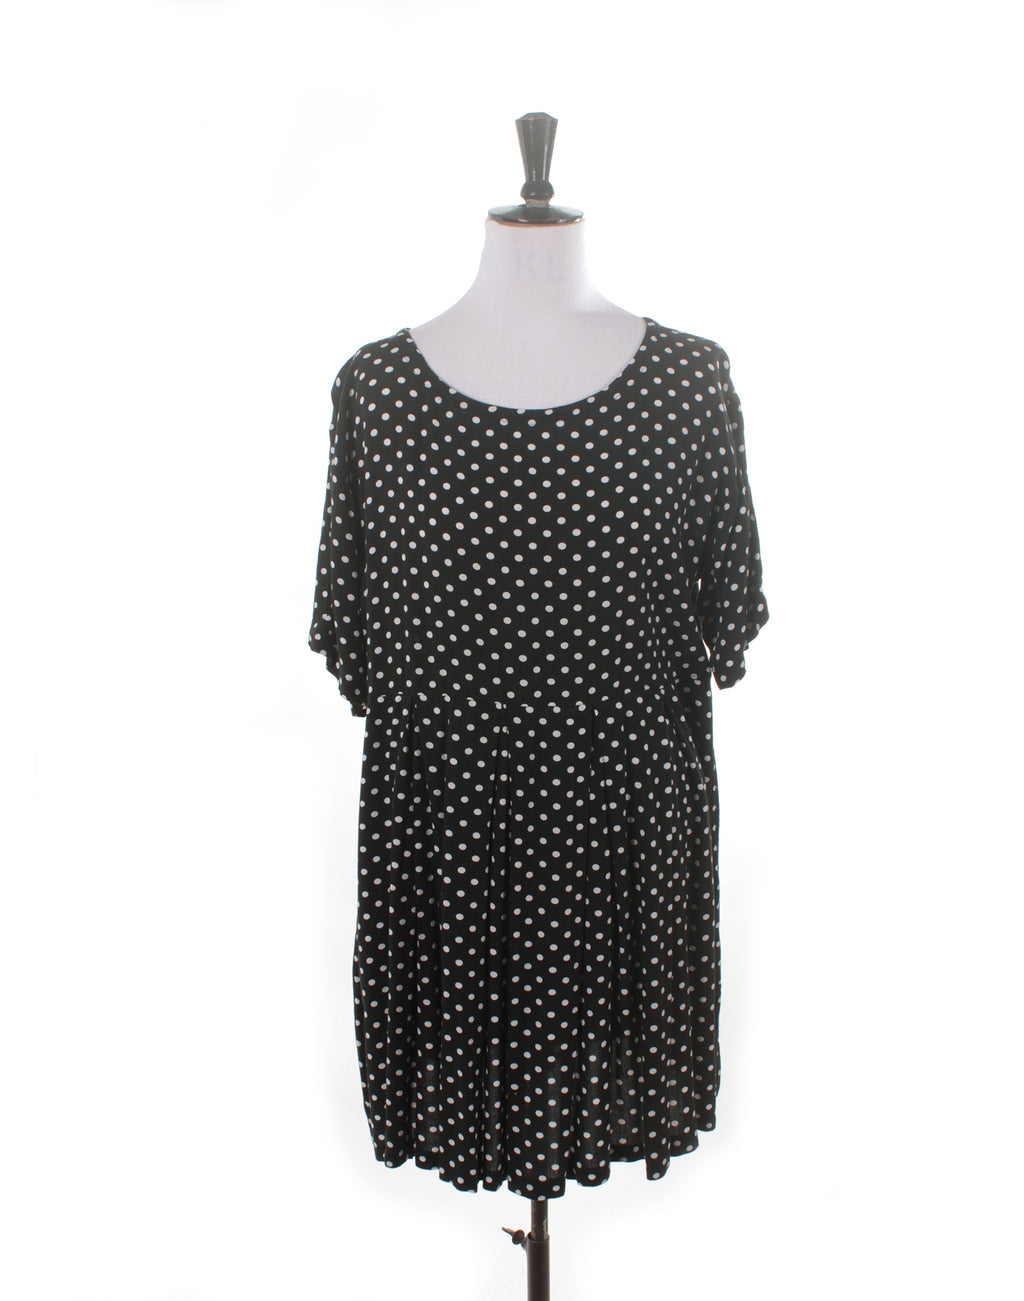 Vintage 90's Black Polka Dot Gathered Dress